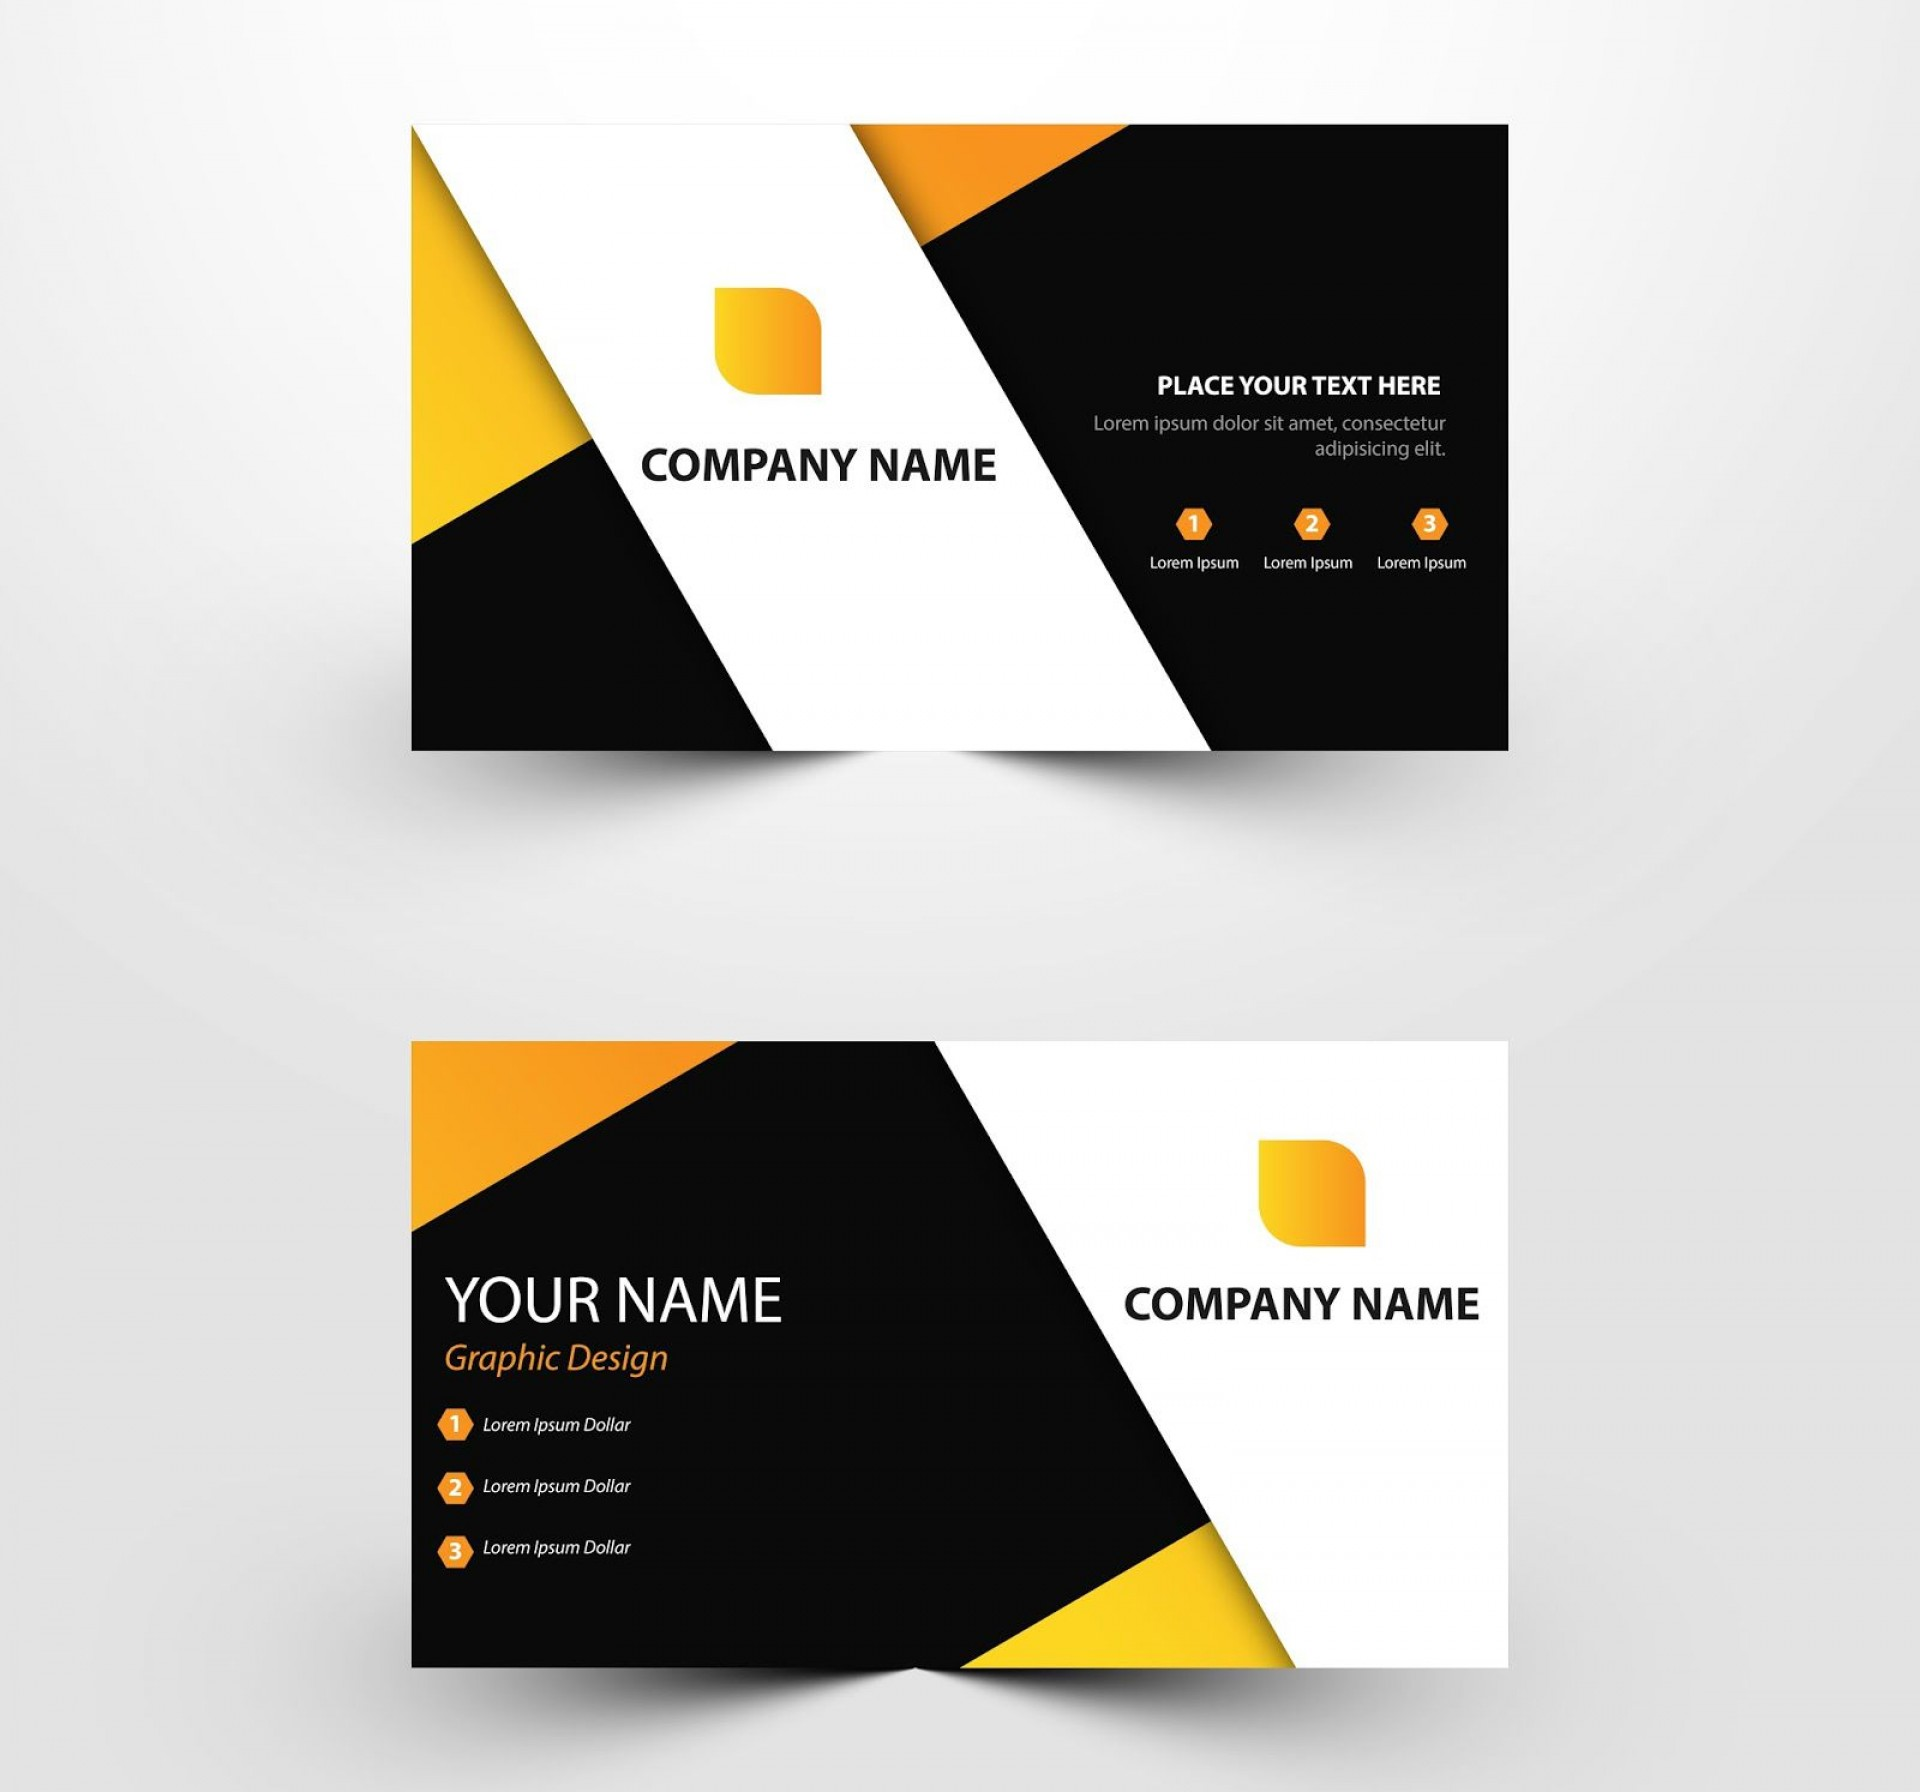 009 Awful Free Download Busines Card Template Highest Quality  For Microsoft Publisher Photoshop Powerpoint1920